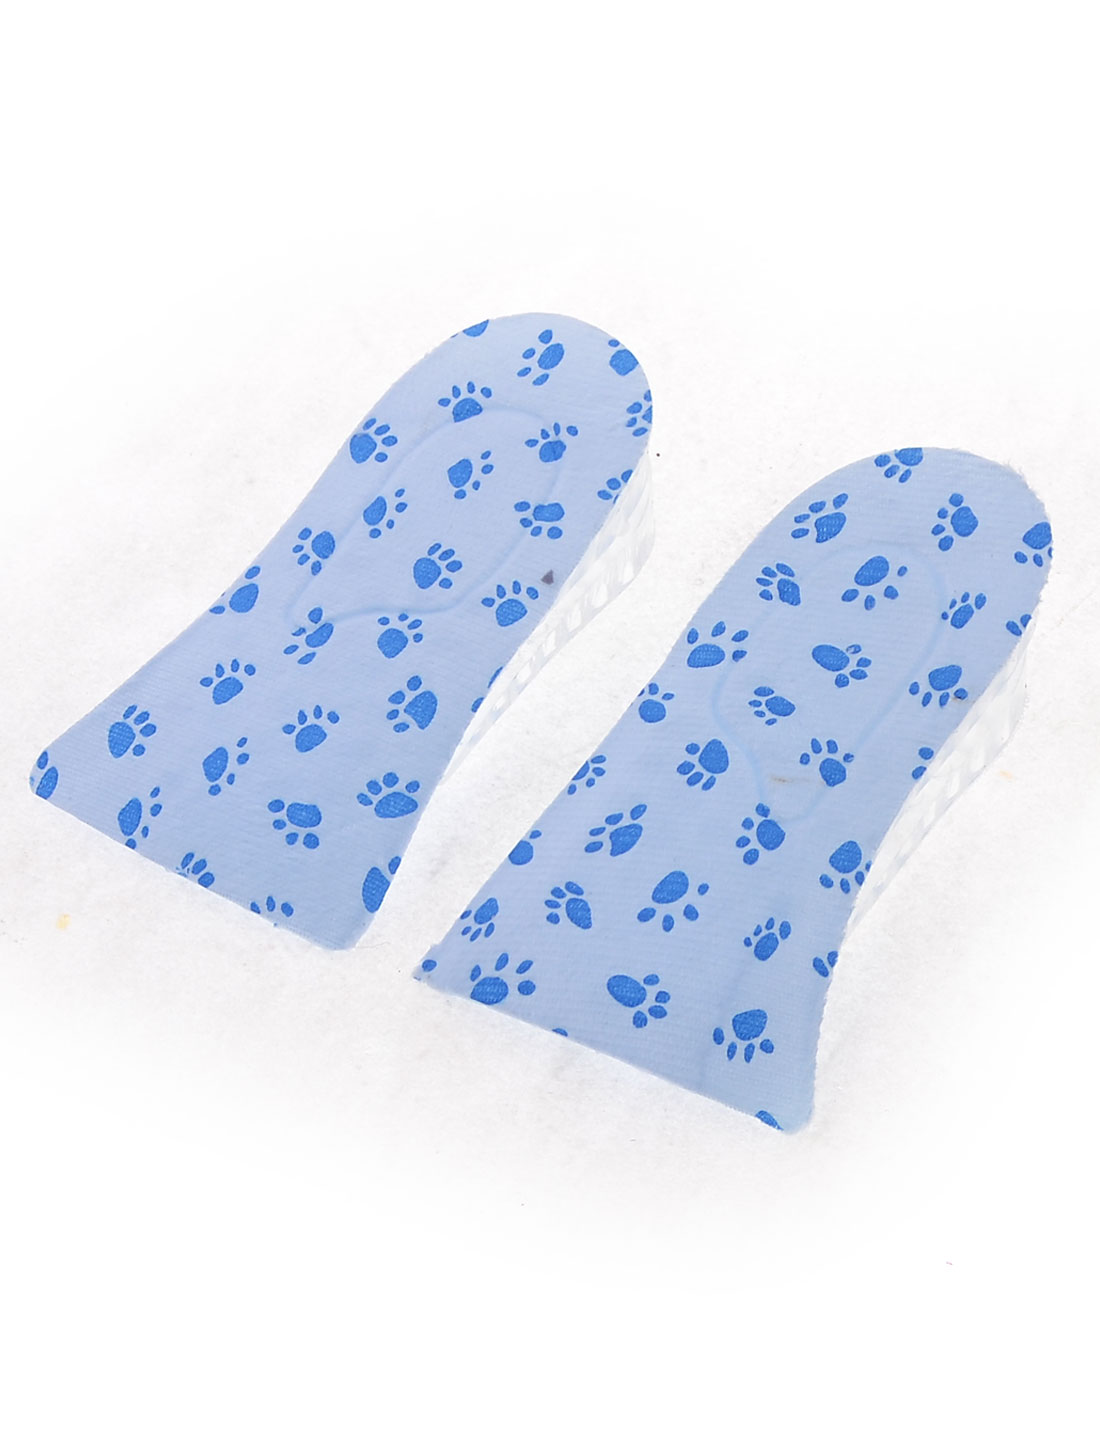 Blue Paw Pattern 3.8cm High Increase Insoles Heel Lift Shoes Pads Pair